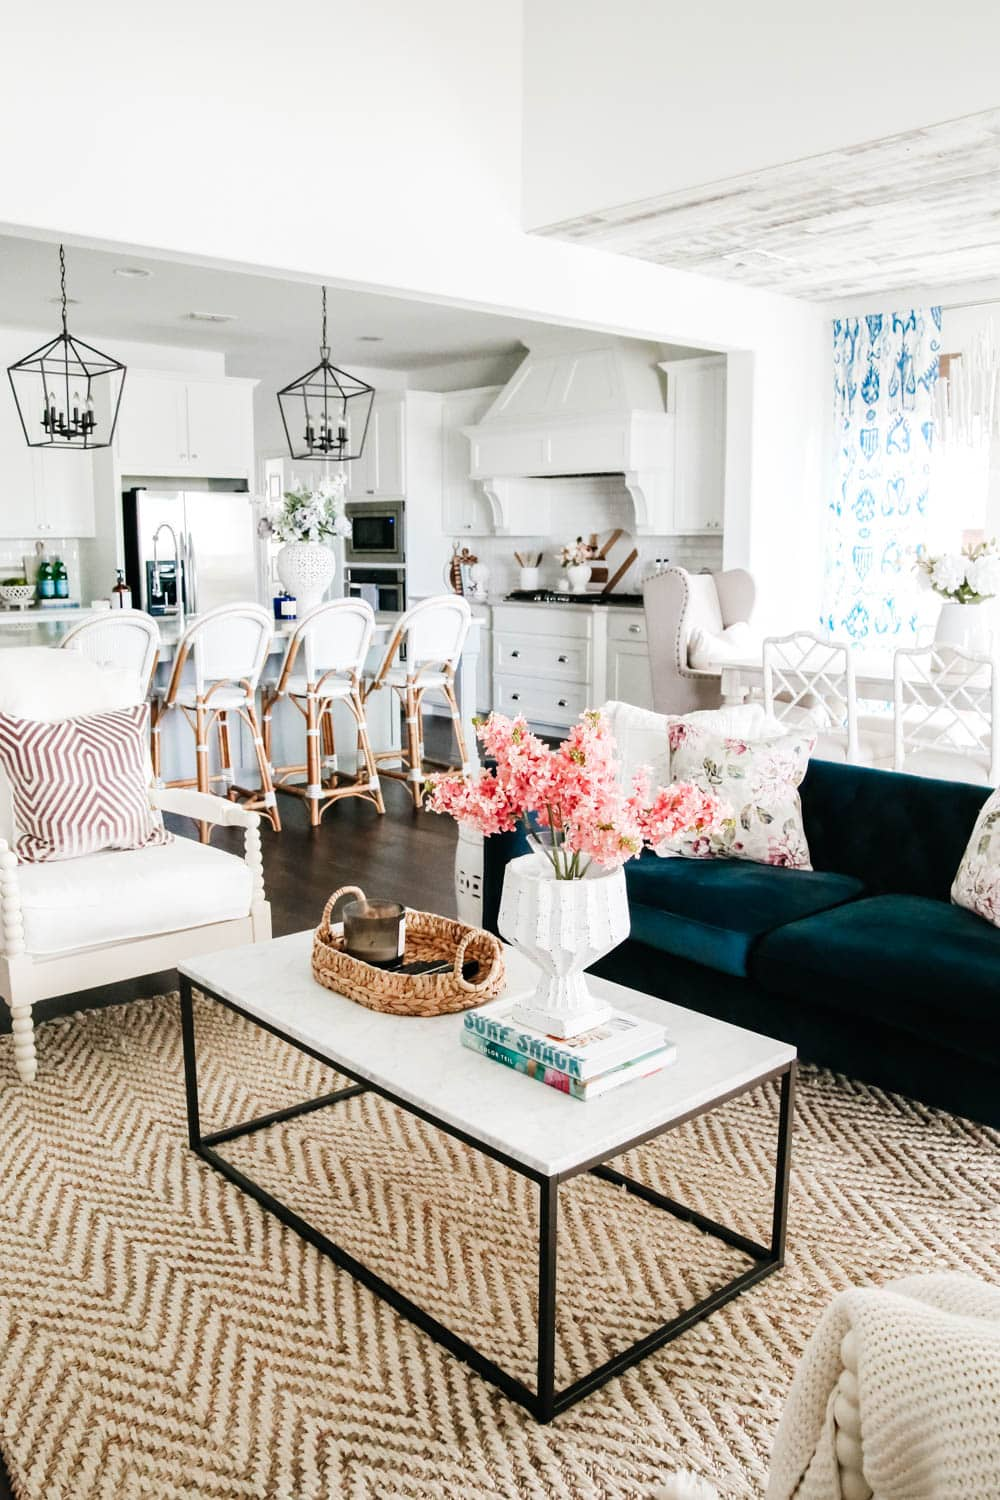 Living room with navy blue sofa and white walls. Blue and white home decor accents with pops of pink and lavender. #livingroom #livingroominspo #hometour #ABlissfulNest